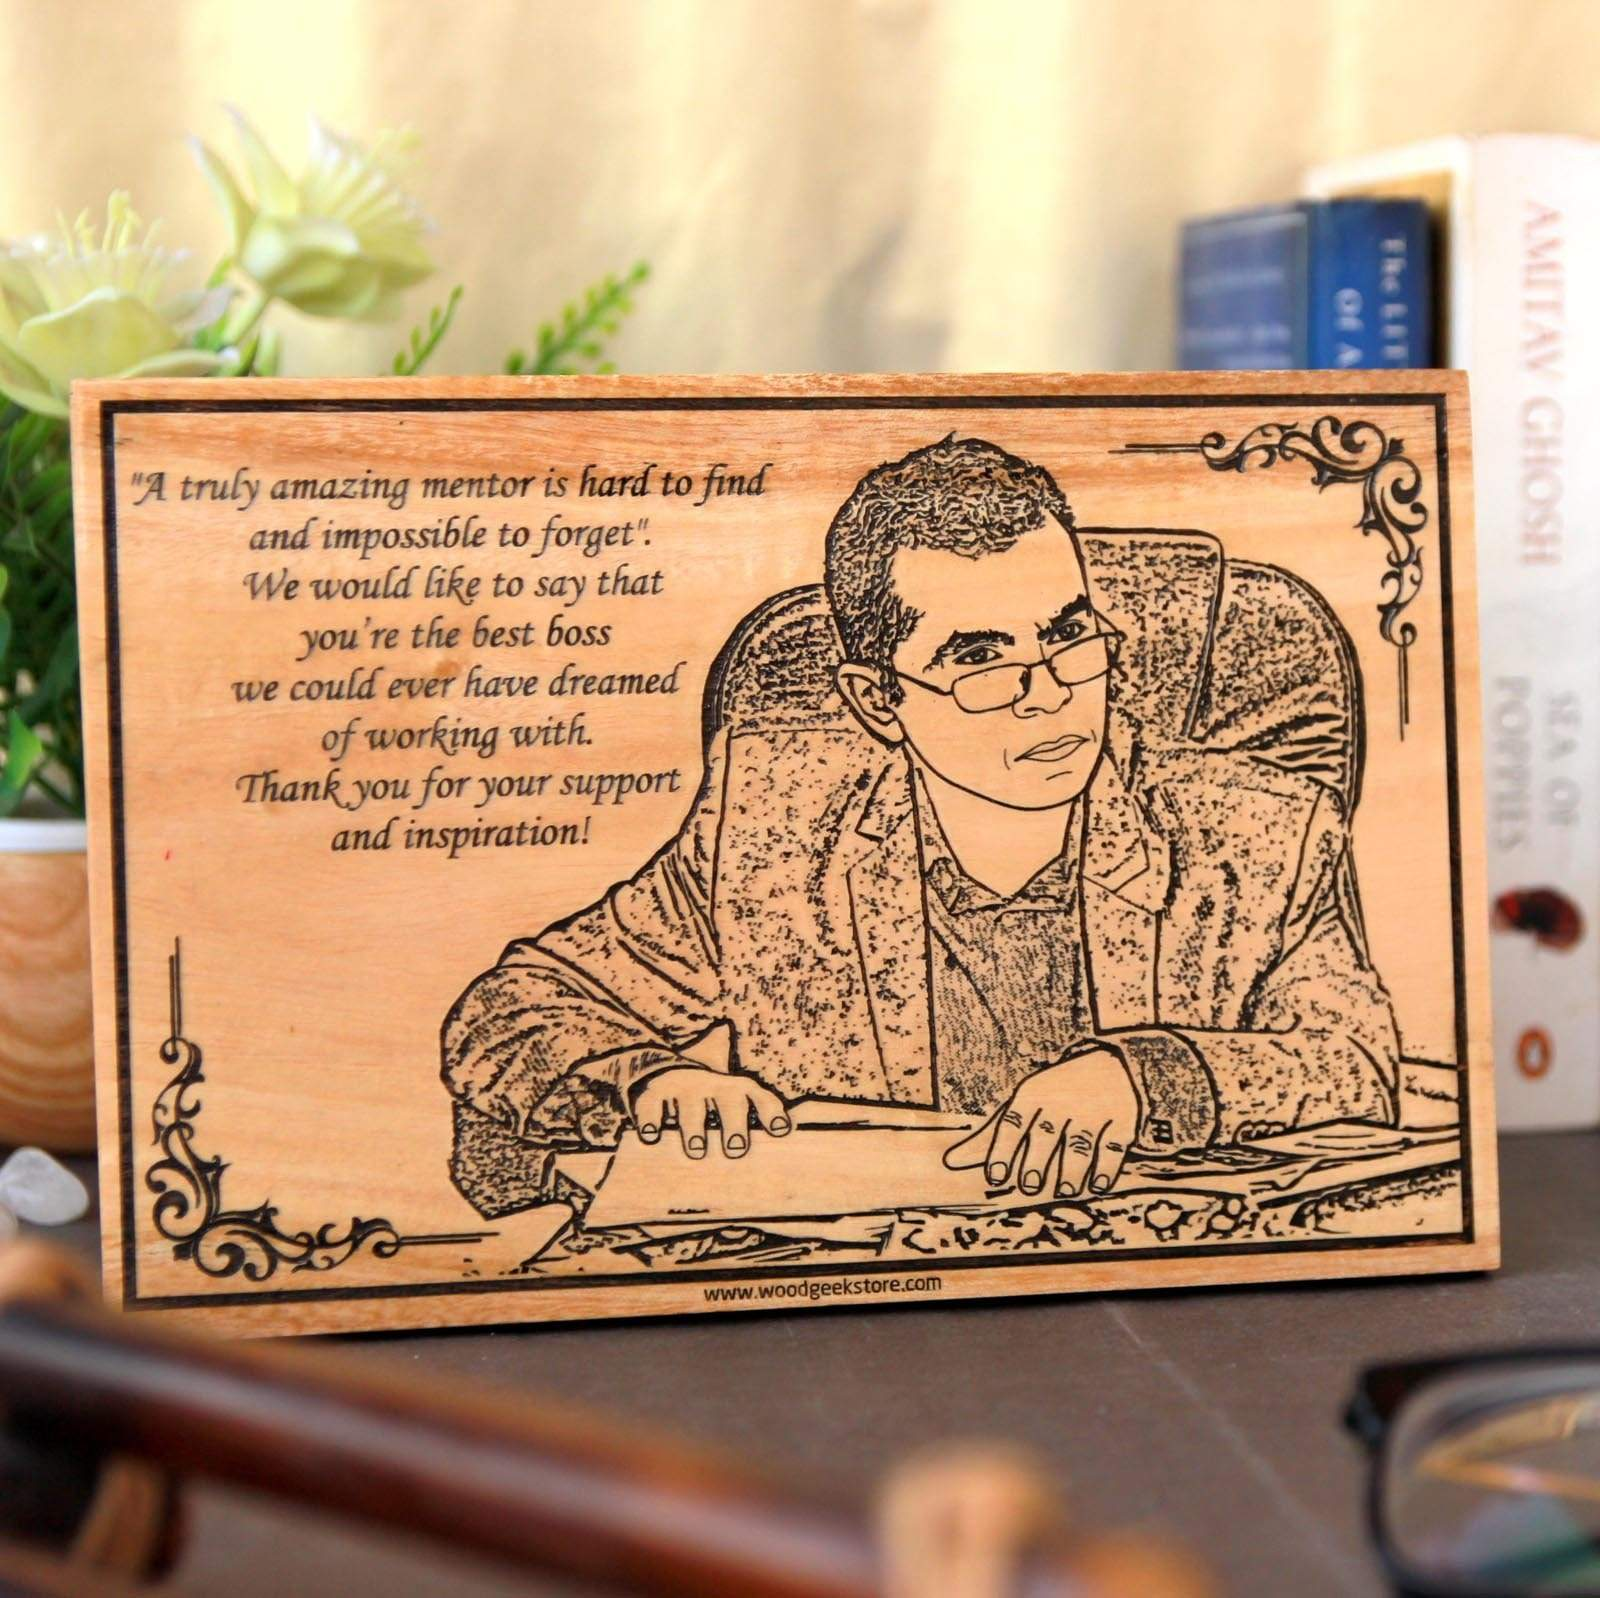 "Wood Poster Engraved With Photo & Quote "" A truly amazing mentor is hard to find and impossible to forget""  We would like to say that you're the best boss we could ever have dreamed of working with.Thank you for your support and inspiration. This photo on wood is one of the best mentor gifts and gifts for boss."